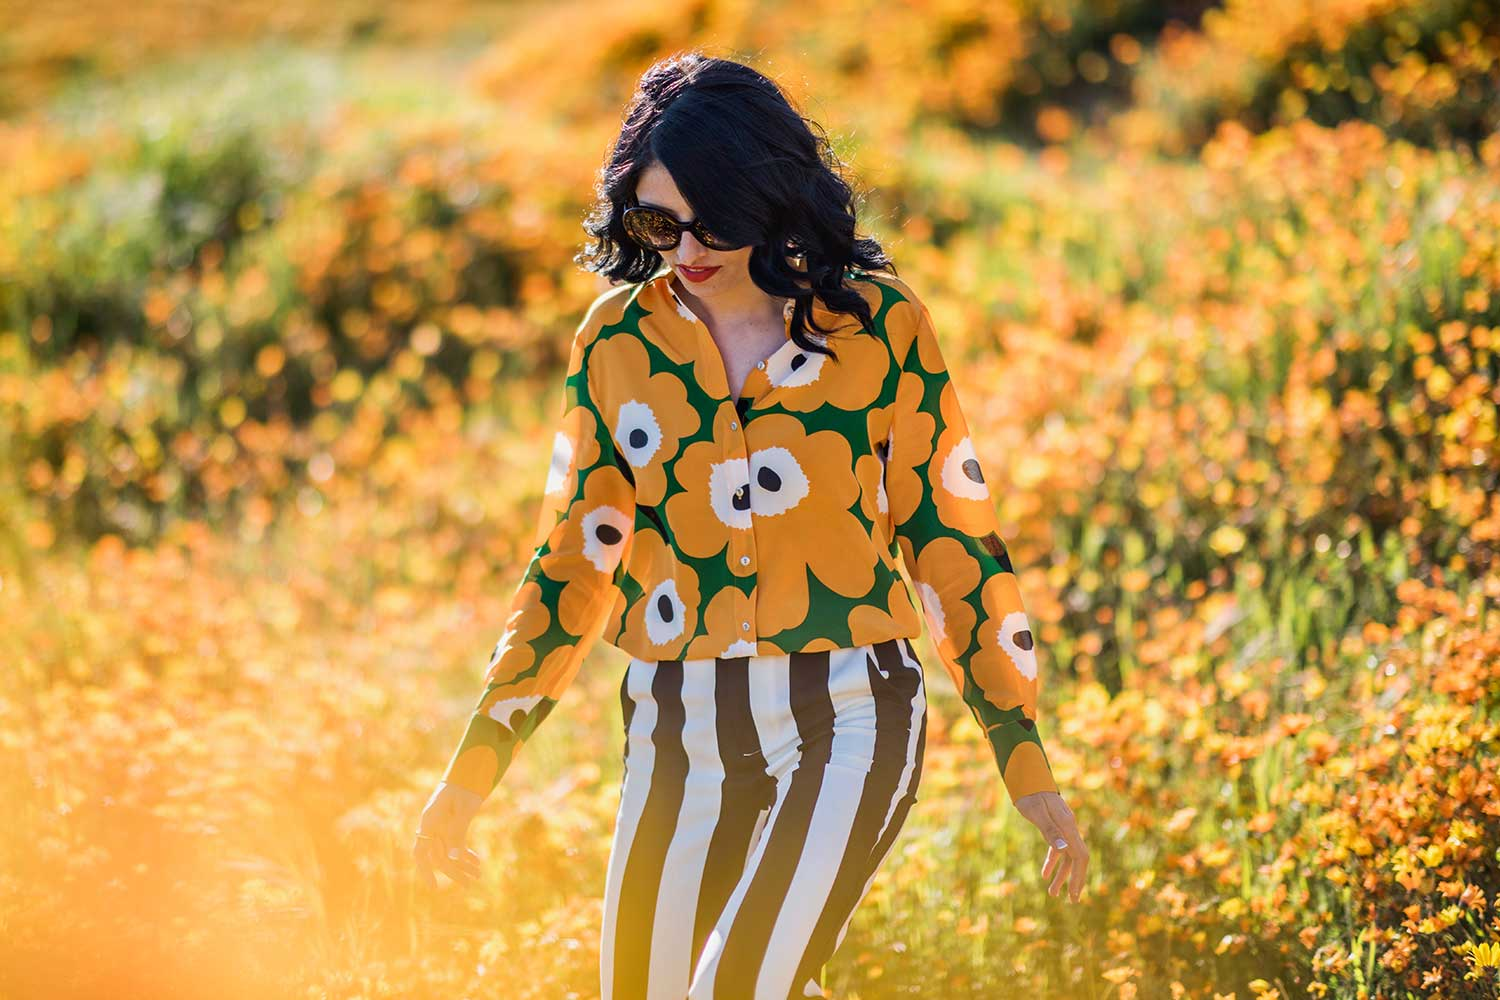 Jenna-Pilant-Style-Blogger-Lucky-Little-Mustardseed-Spring-Fashion-2017-Marimekko-Shirt-with-Alice-and-Olivia-Pants-5